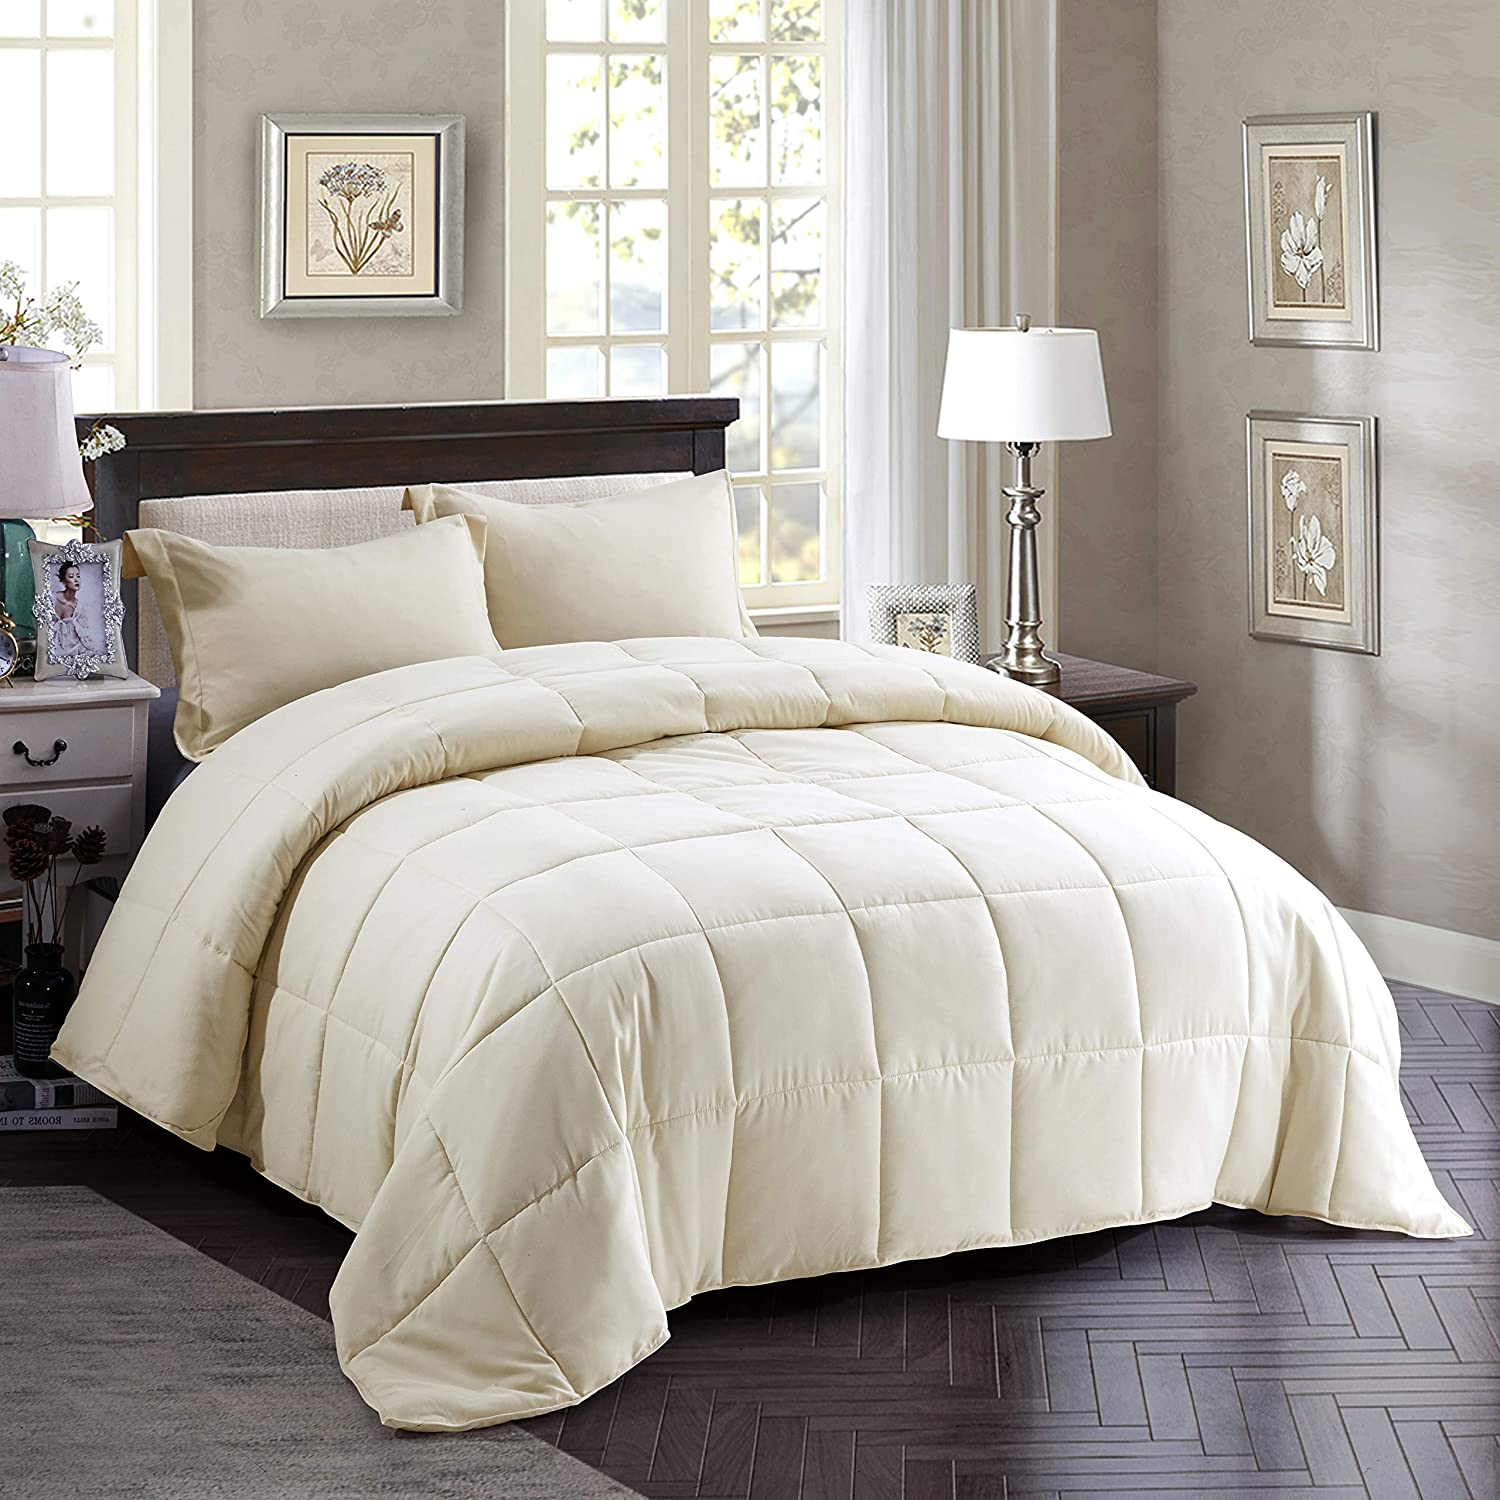 HIG 3pc Down Alternative Comforter Set - All Season Reversible Comforter with Two Shams - Quilted Duvet Insert with Corner Tabs -Box Stitched –Hypoallergenic, Soft, Fluffy (Full/Queen, Ivory)